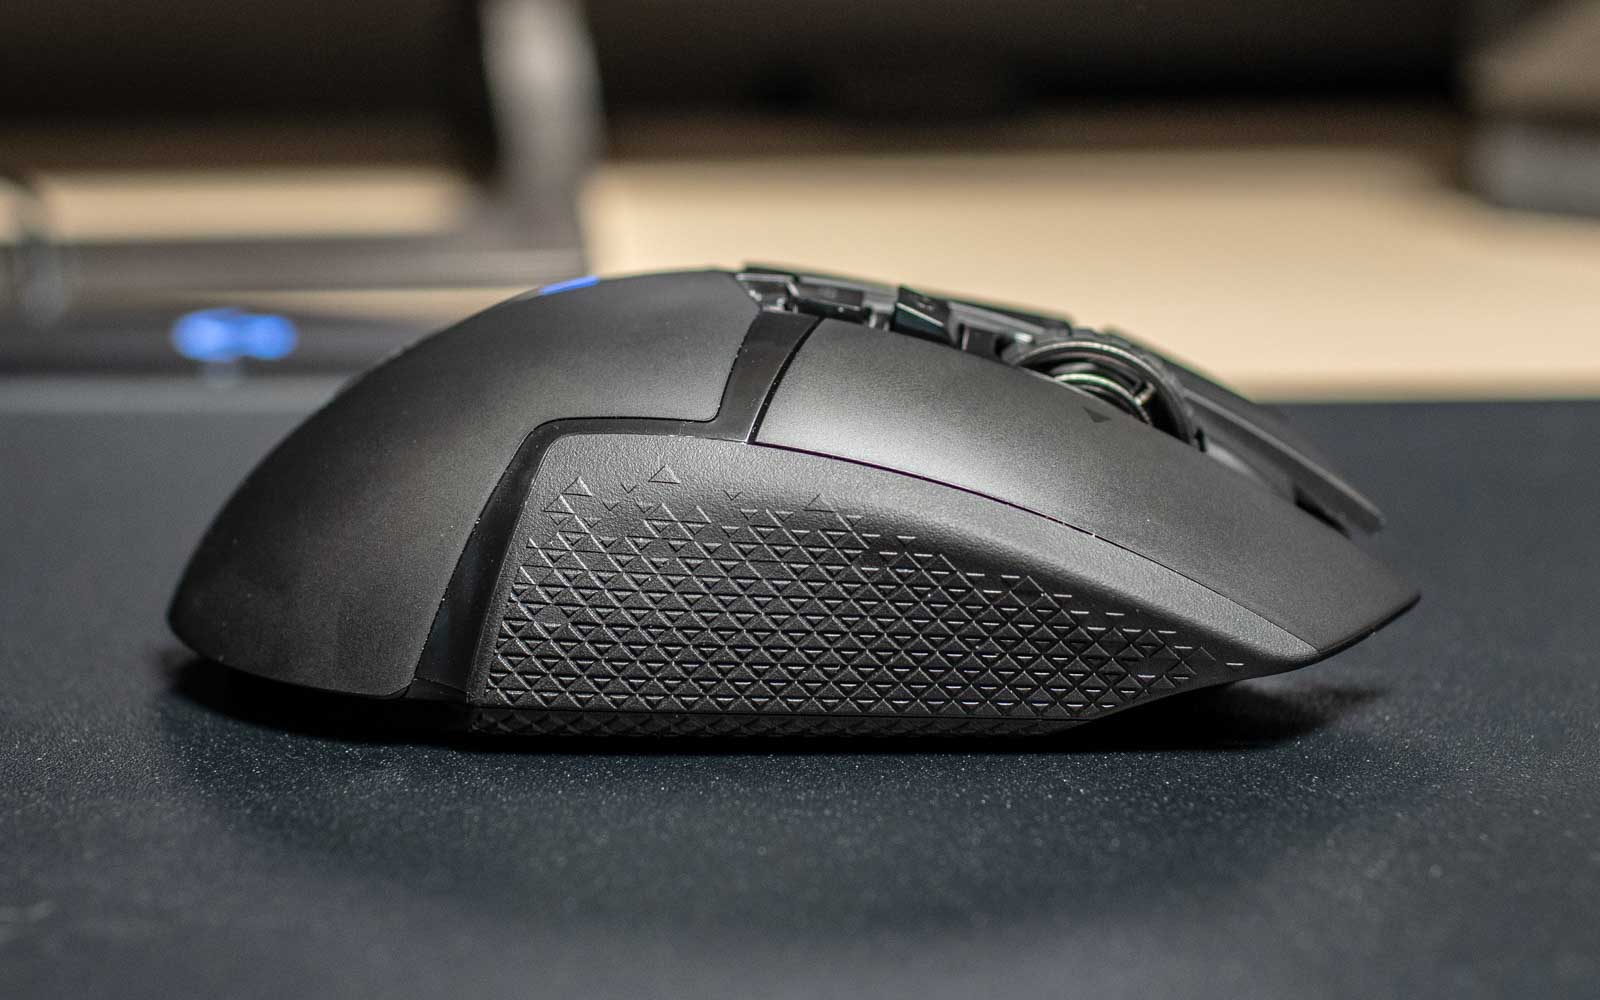 Logitech G502 Lightspeed Review: The Perfect Gaming Mouse Goes Wireless